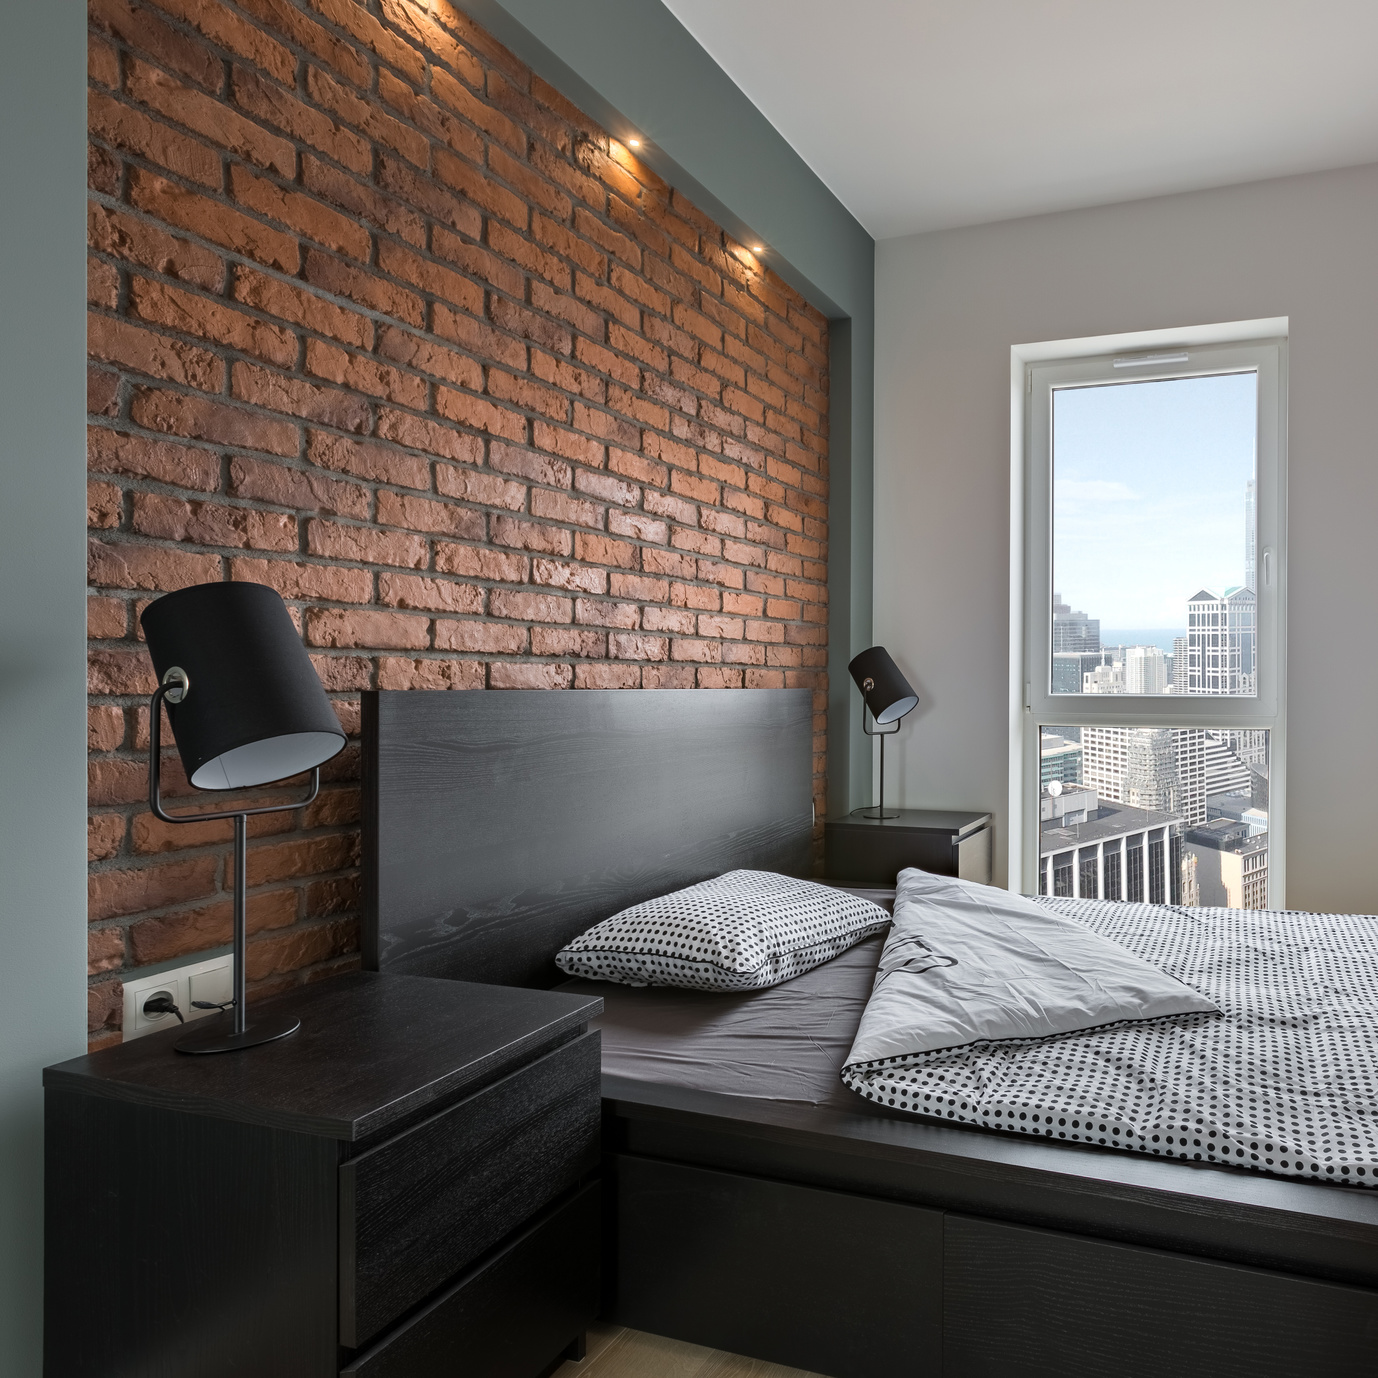 Industrial style bedroom with red, brick wall and double bed